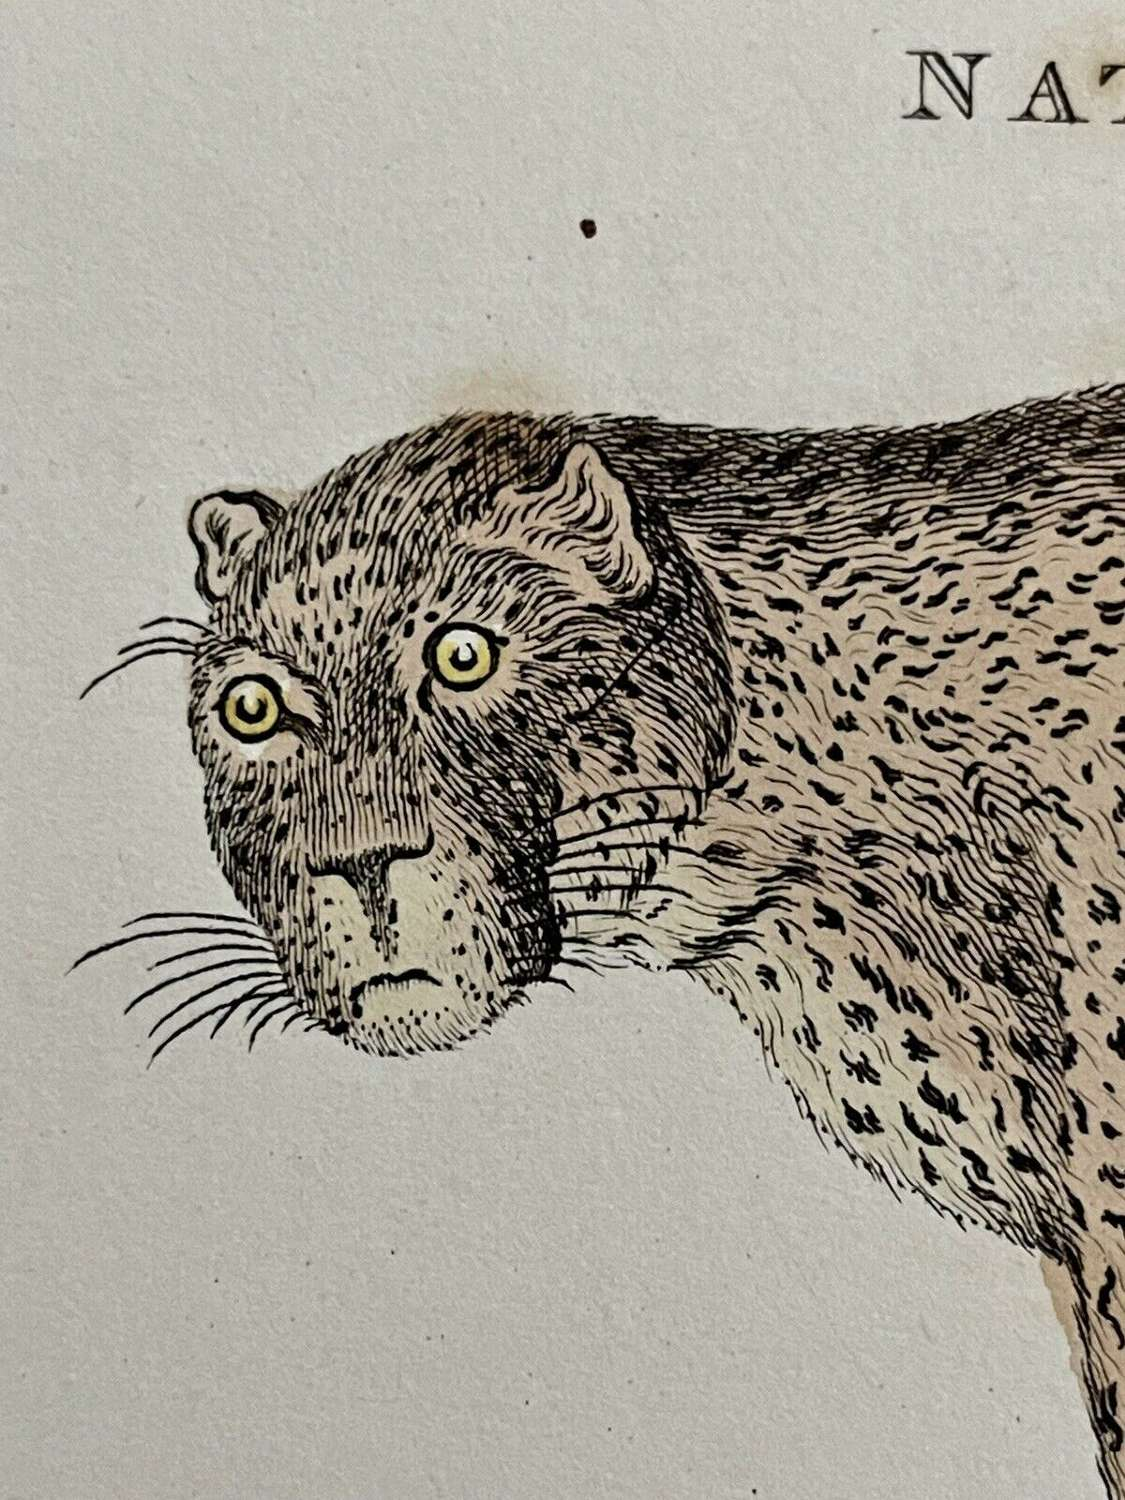 Antique Print Gorge Kearsley 1810 of aLeopard and Tiger